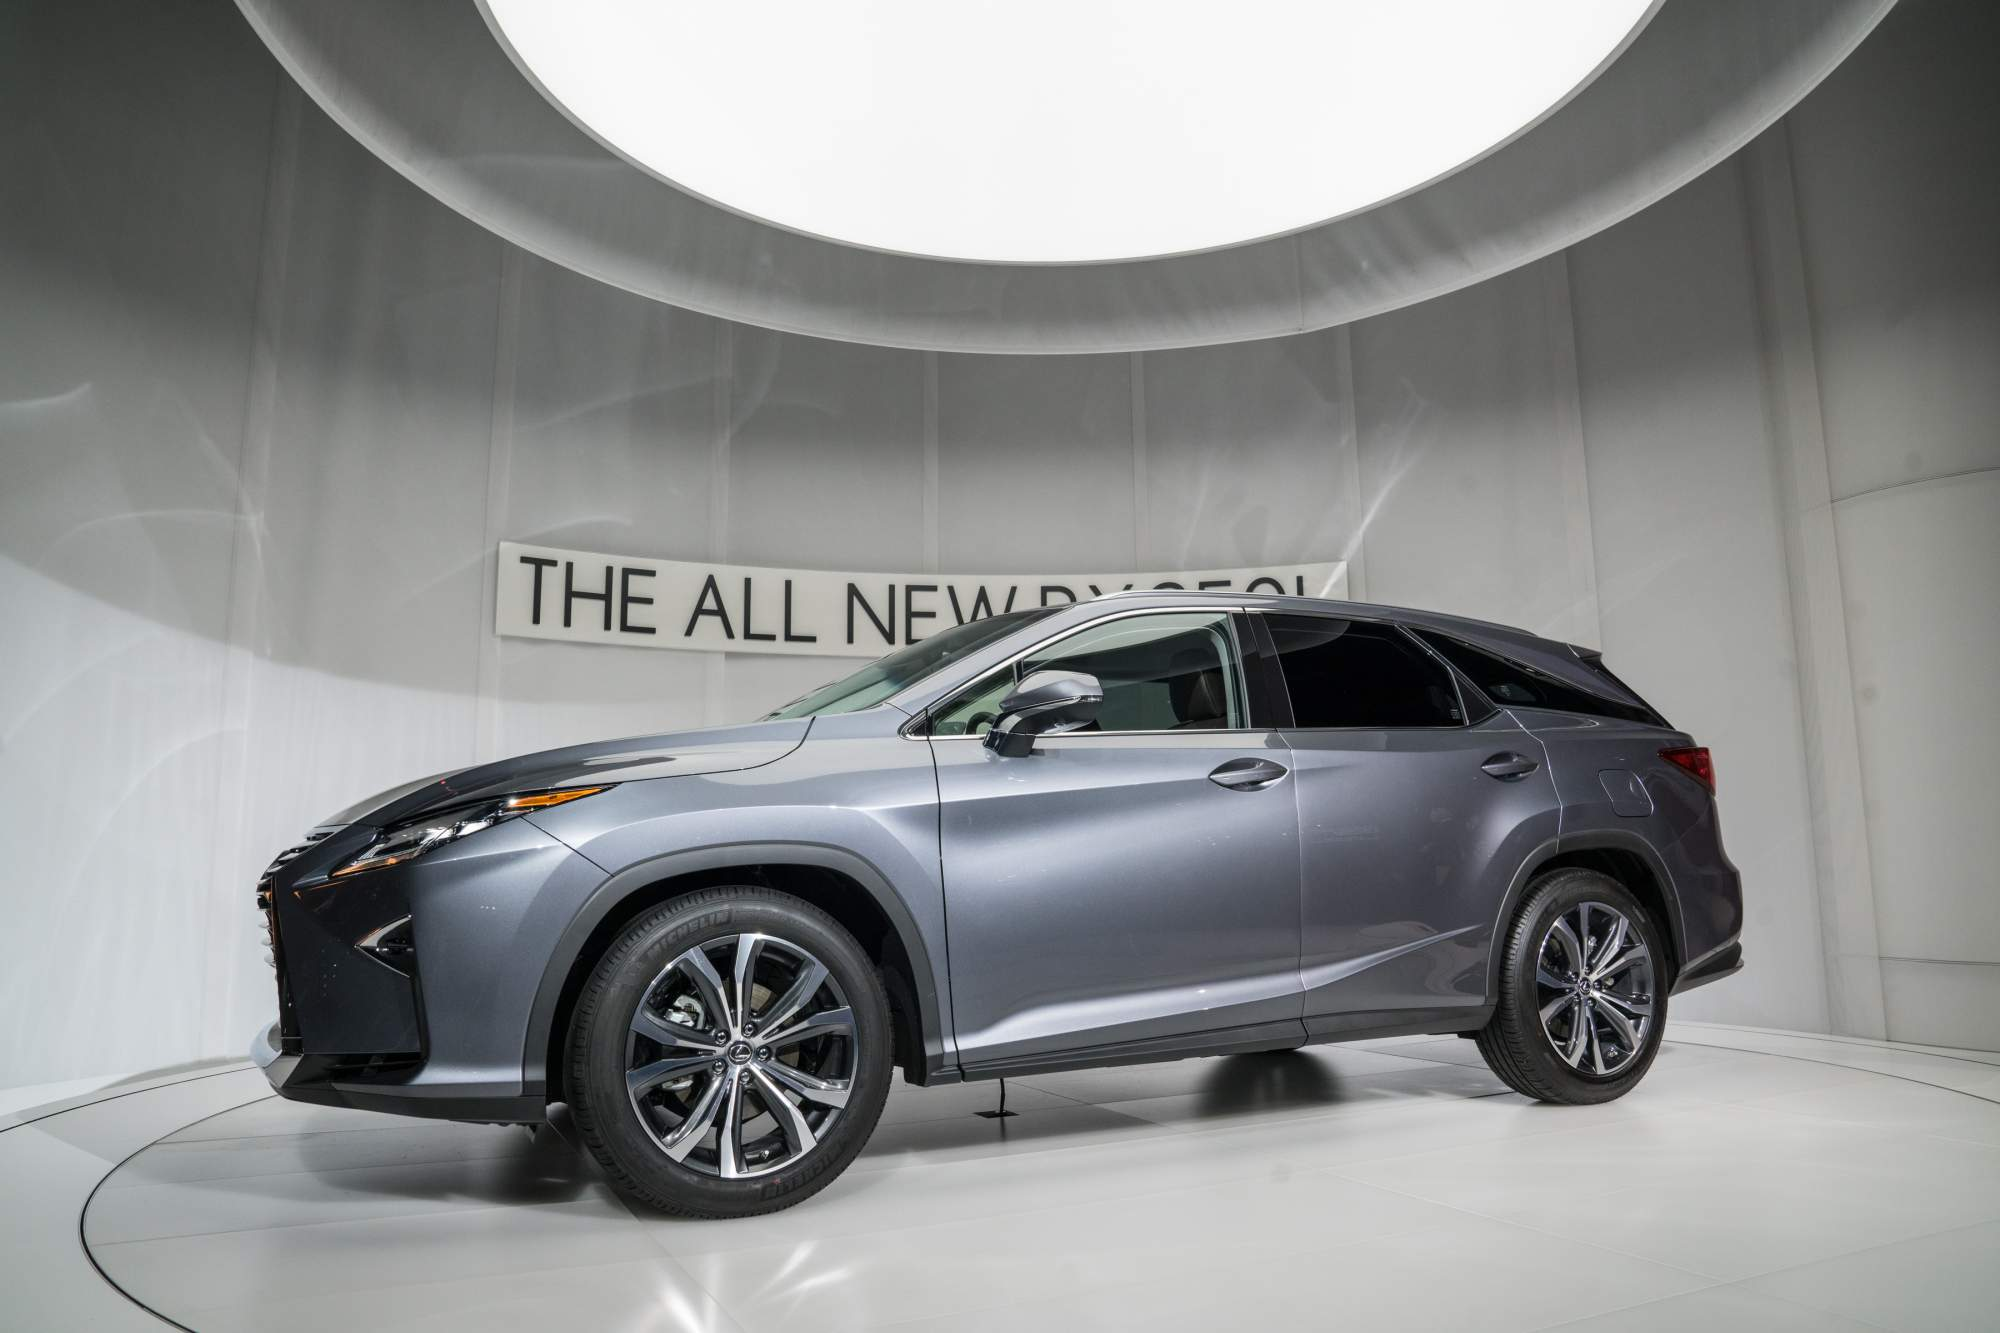 2018 Lexus RX L is a three row SUV that offers up to seven seats